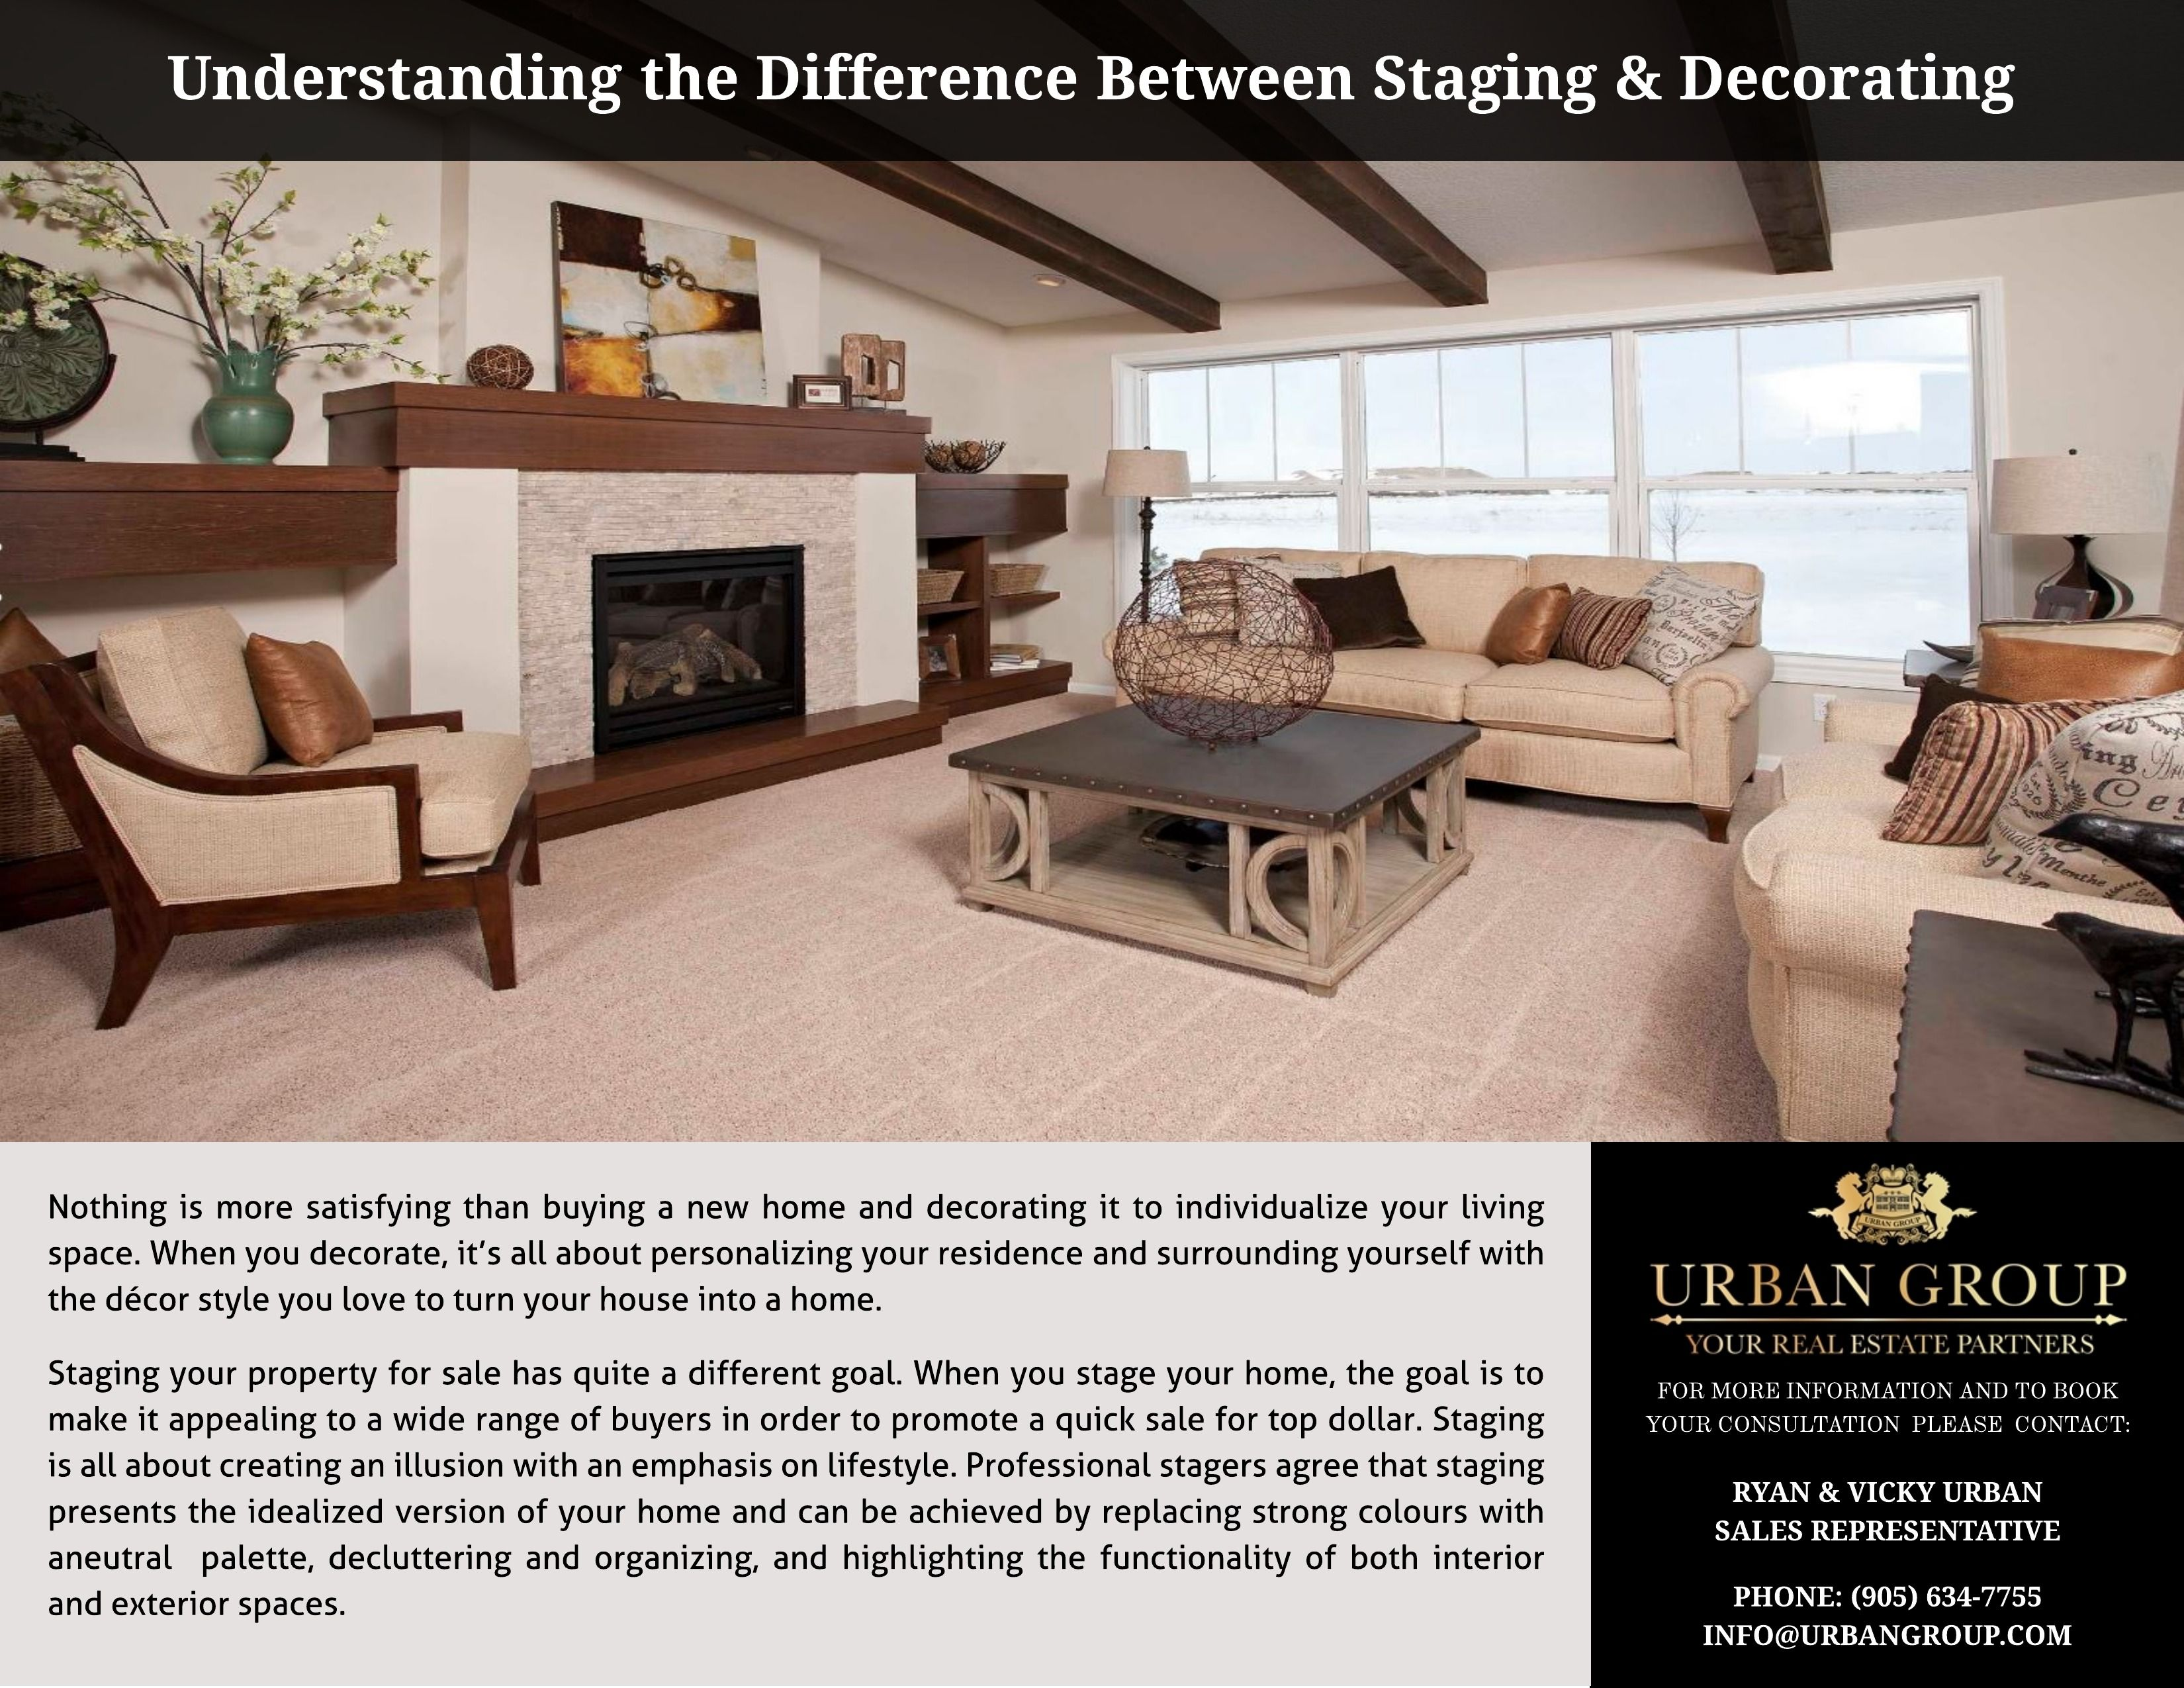 Nothing Is More Satisfying Than Buying A Home U0026 Decorating Your Space. When  Decorating,